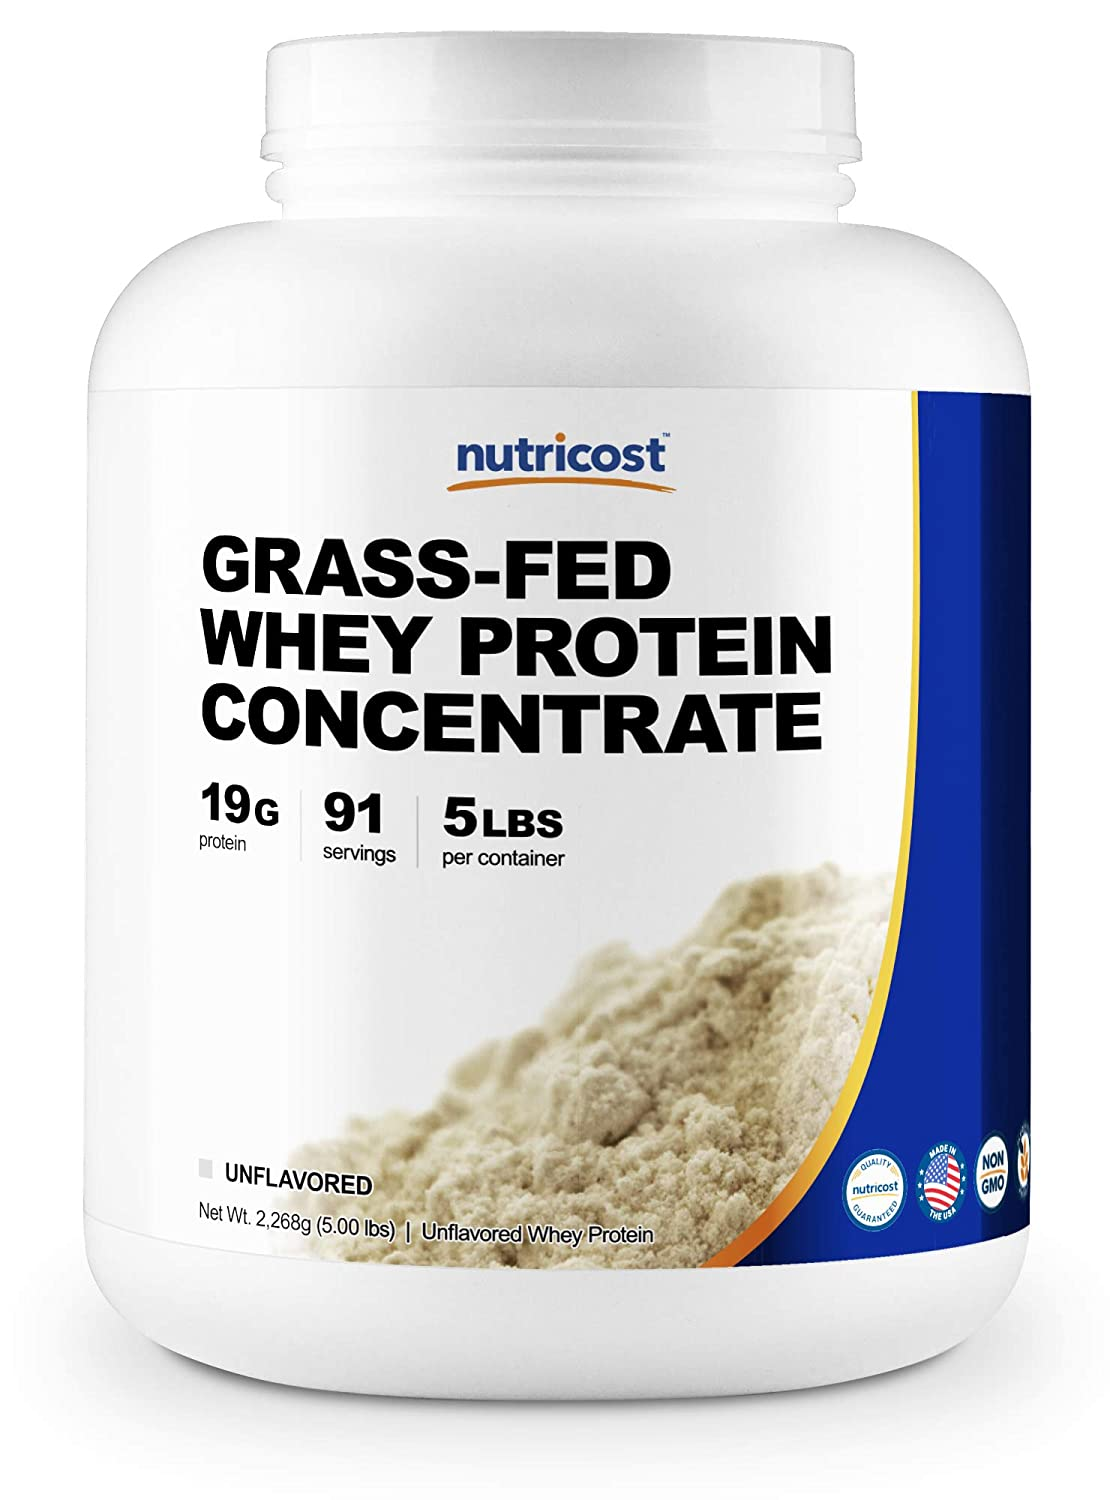 Nutricost Grass-Fed Whey Protein Concentrate Unflavored 5LBS – Undenatured, Non-GMO, Gluten Free, Natural Flavors